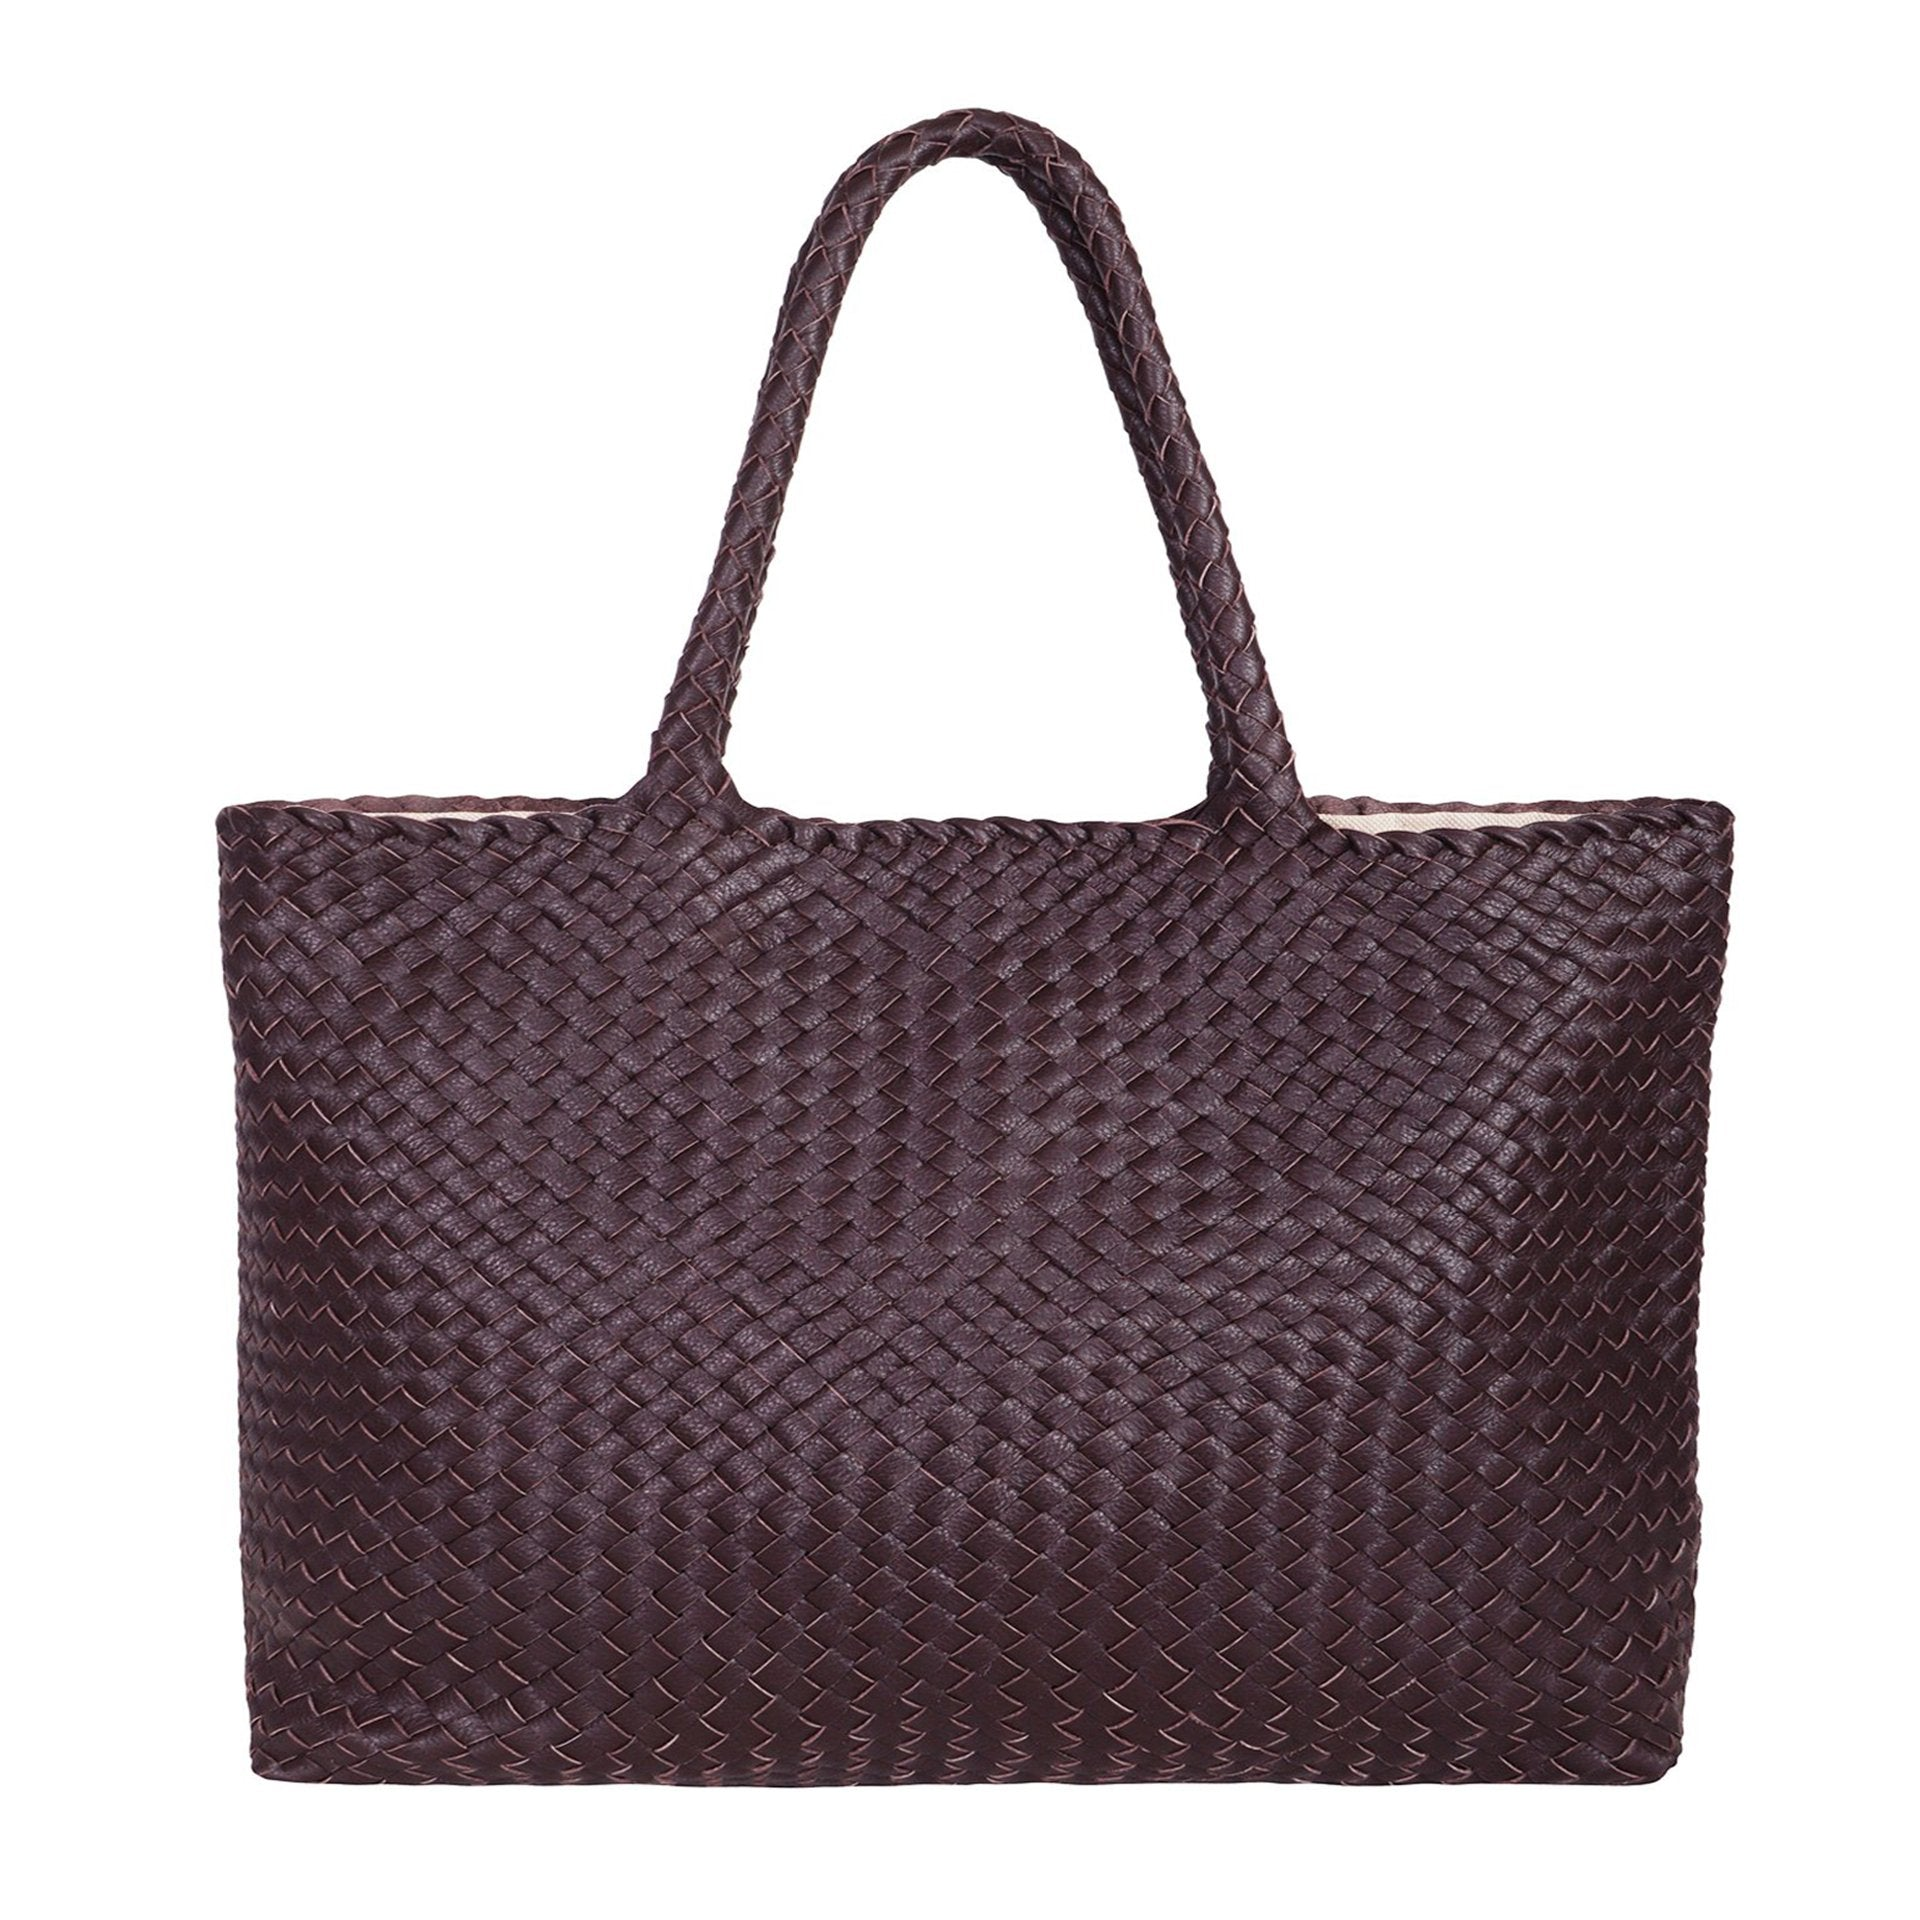 The Travel Elena Woven Handbag